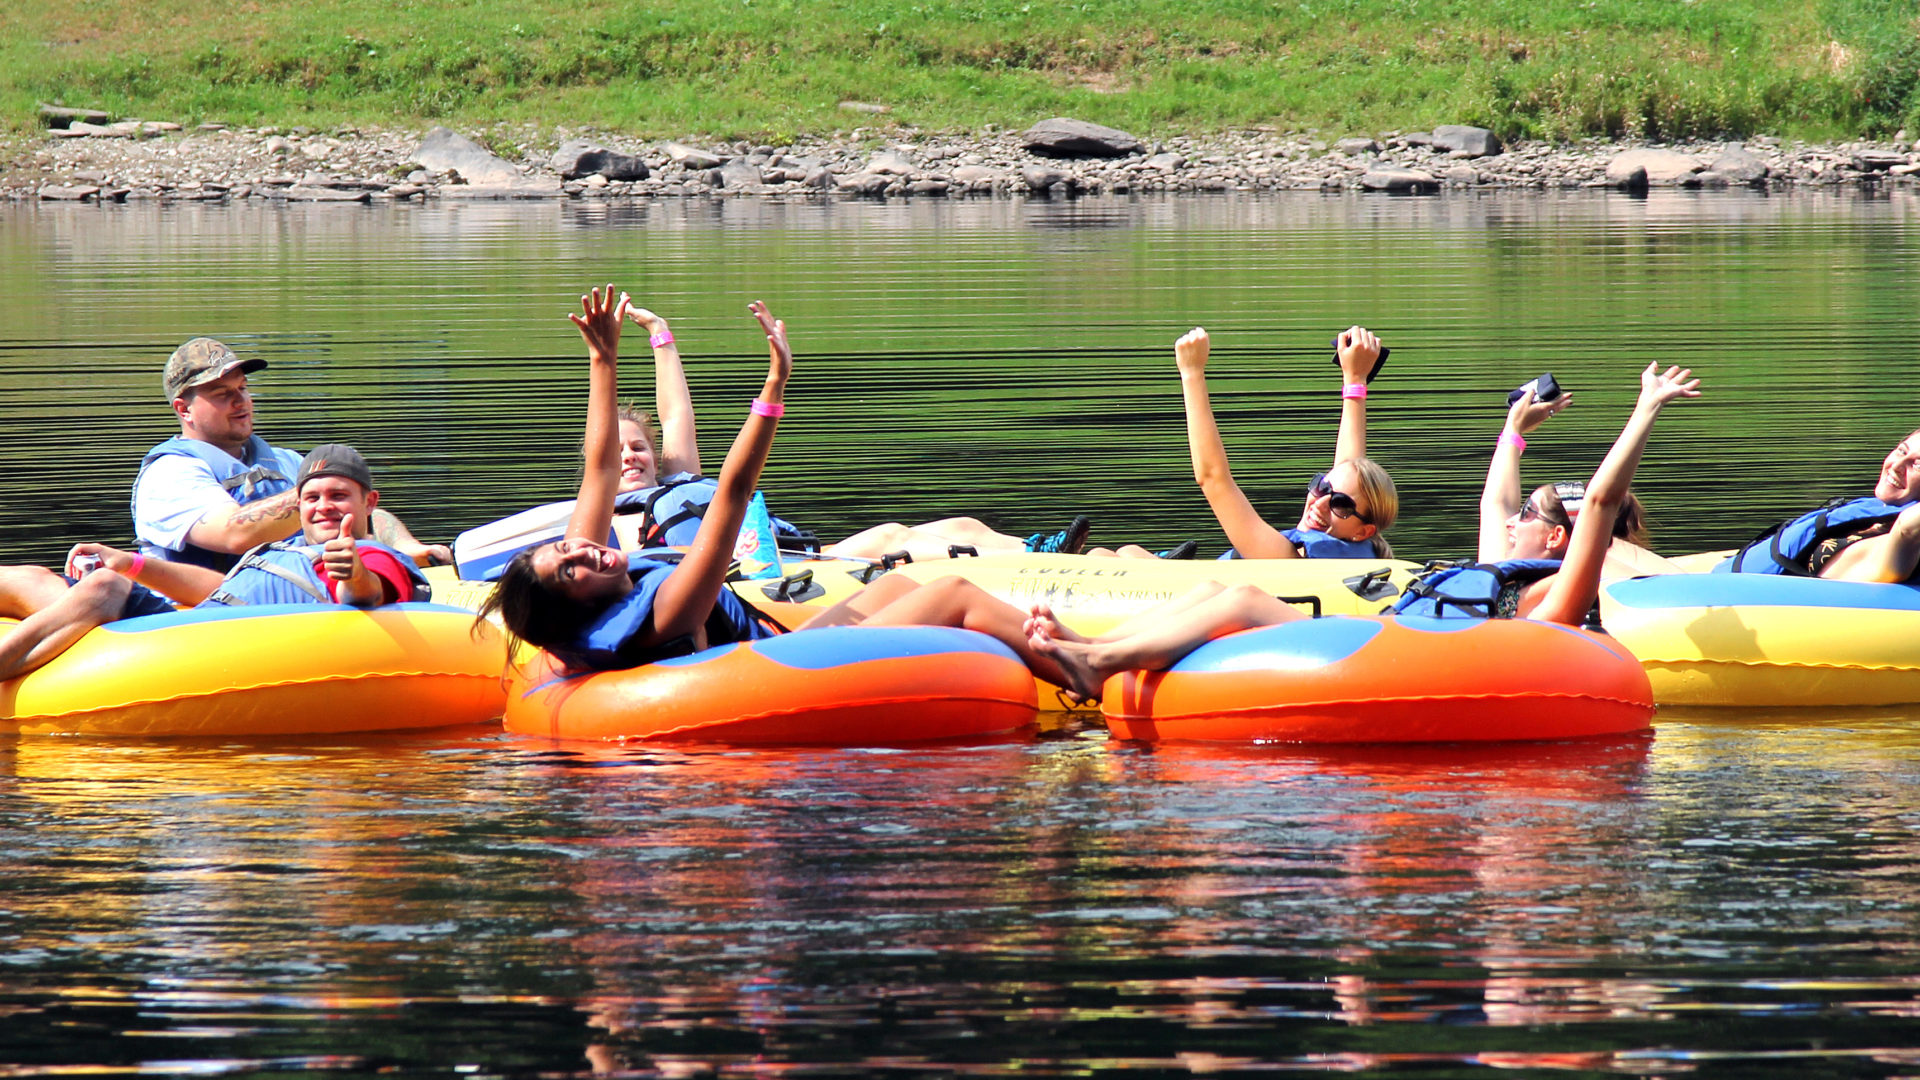 group of tubers enjoying the day Knights Eddy Indian Head Canoeing Rafting Kayaking Tubing Delaware River